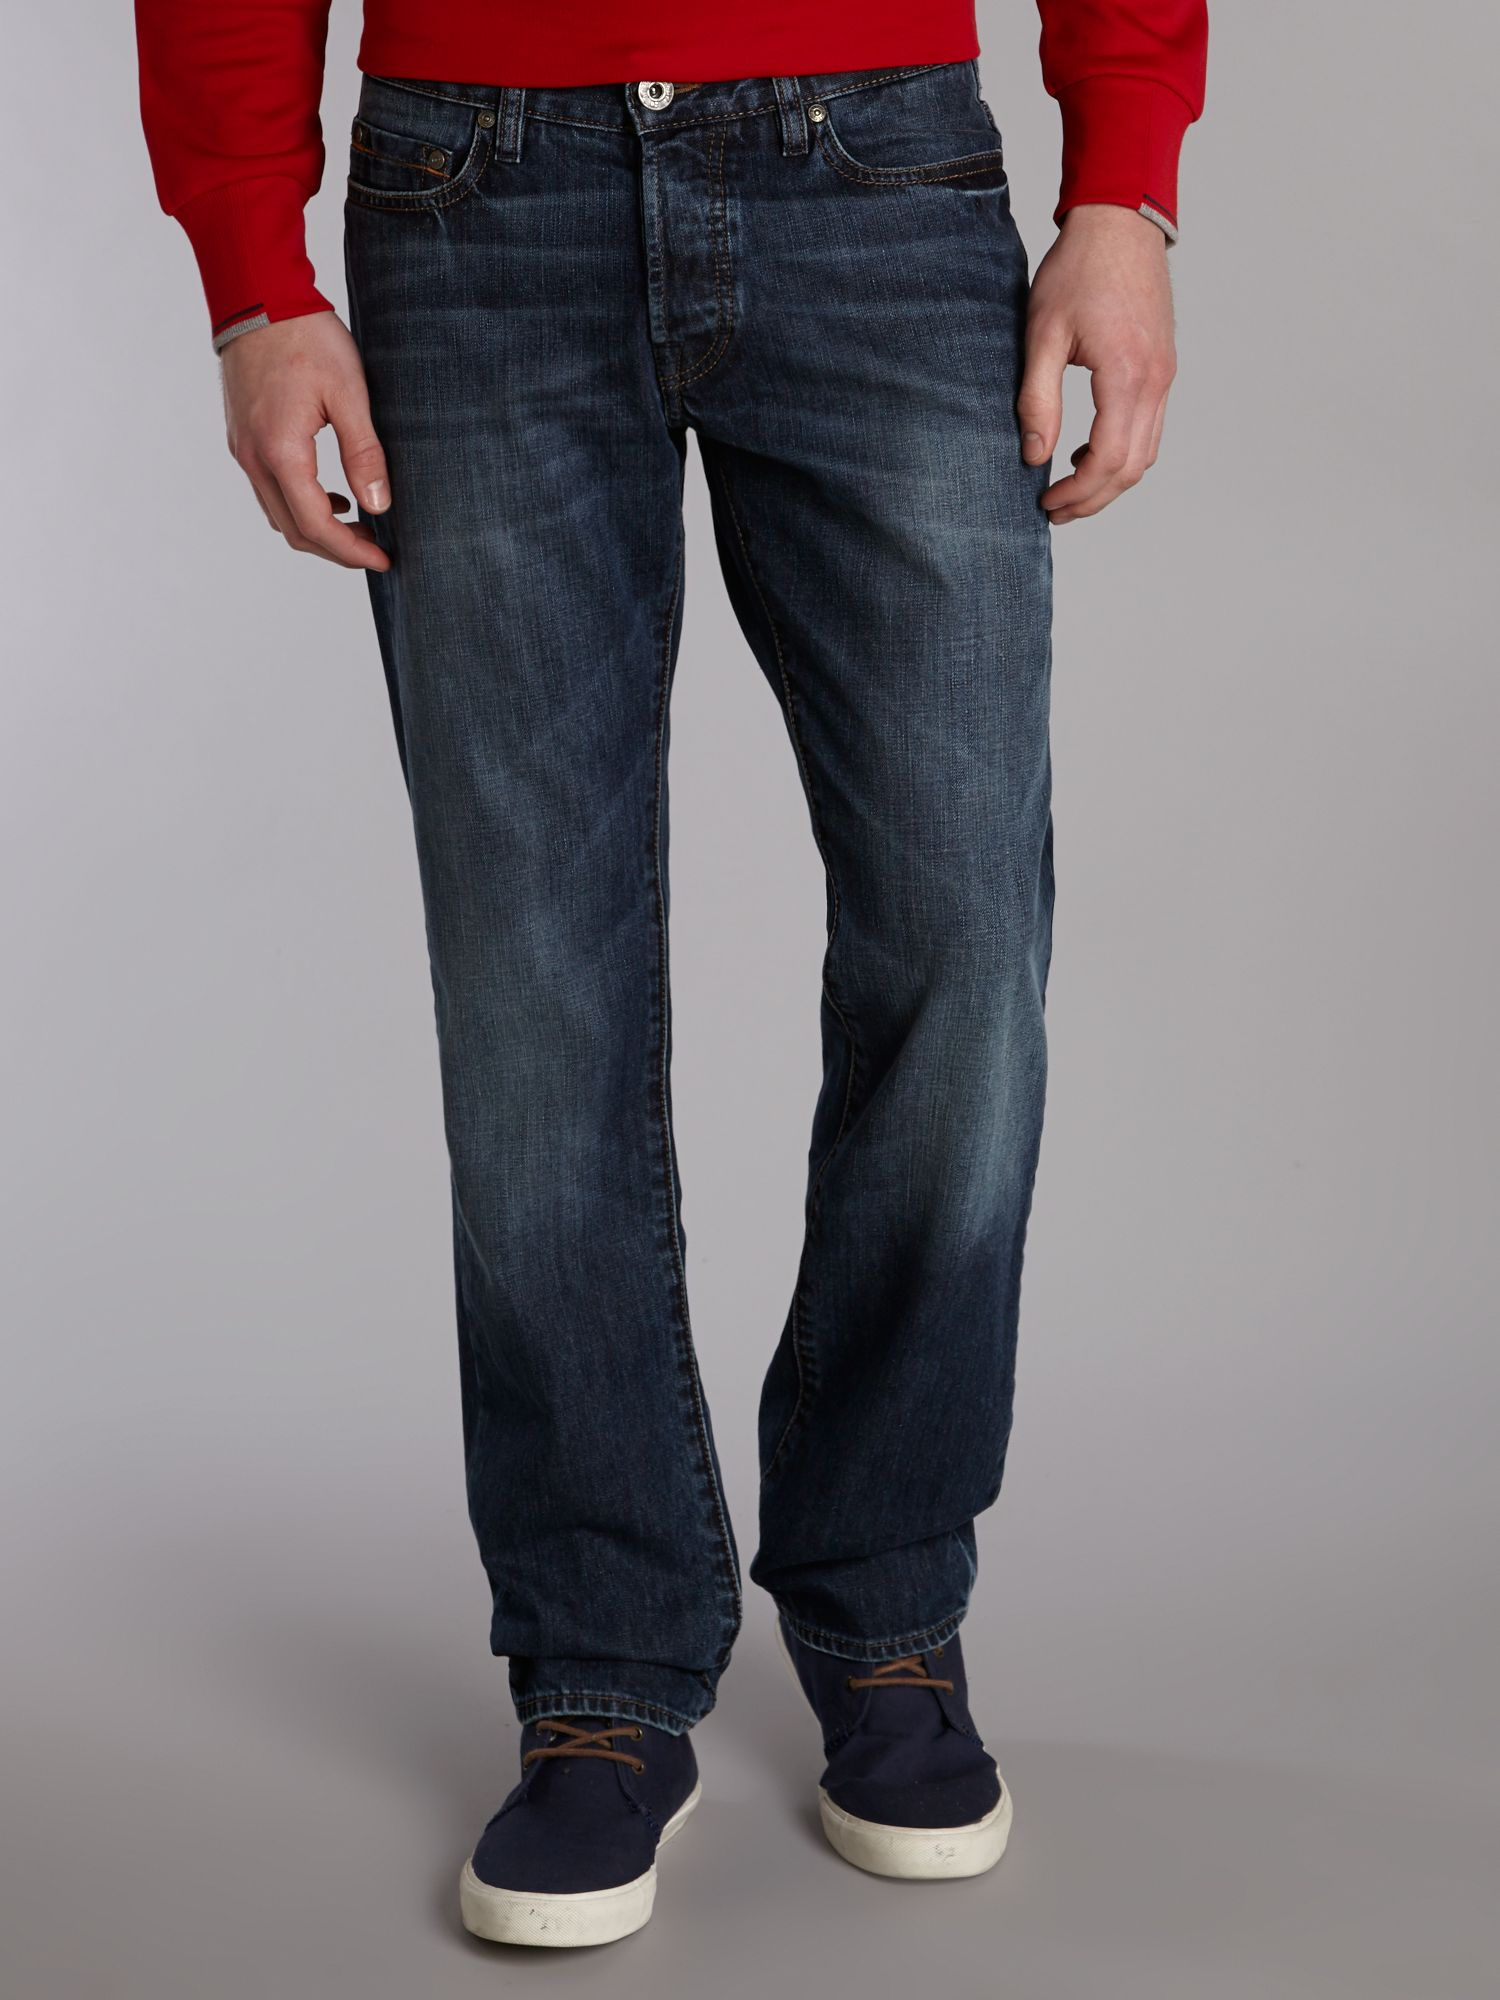 Orange 25 light wash straight fit jeans